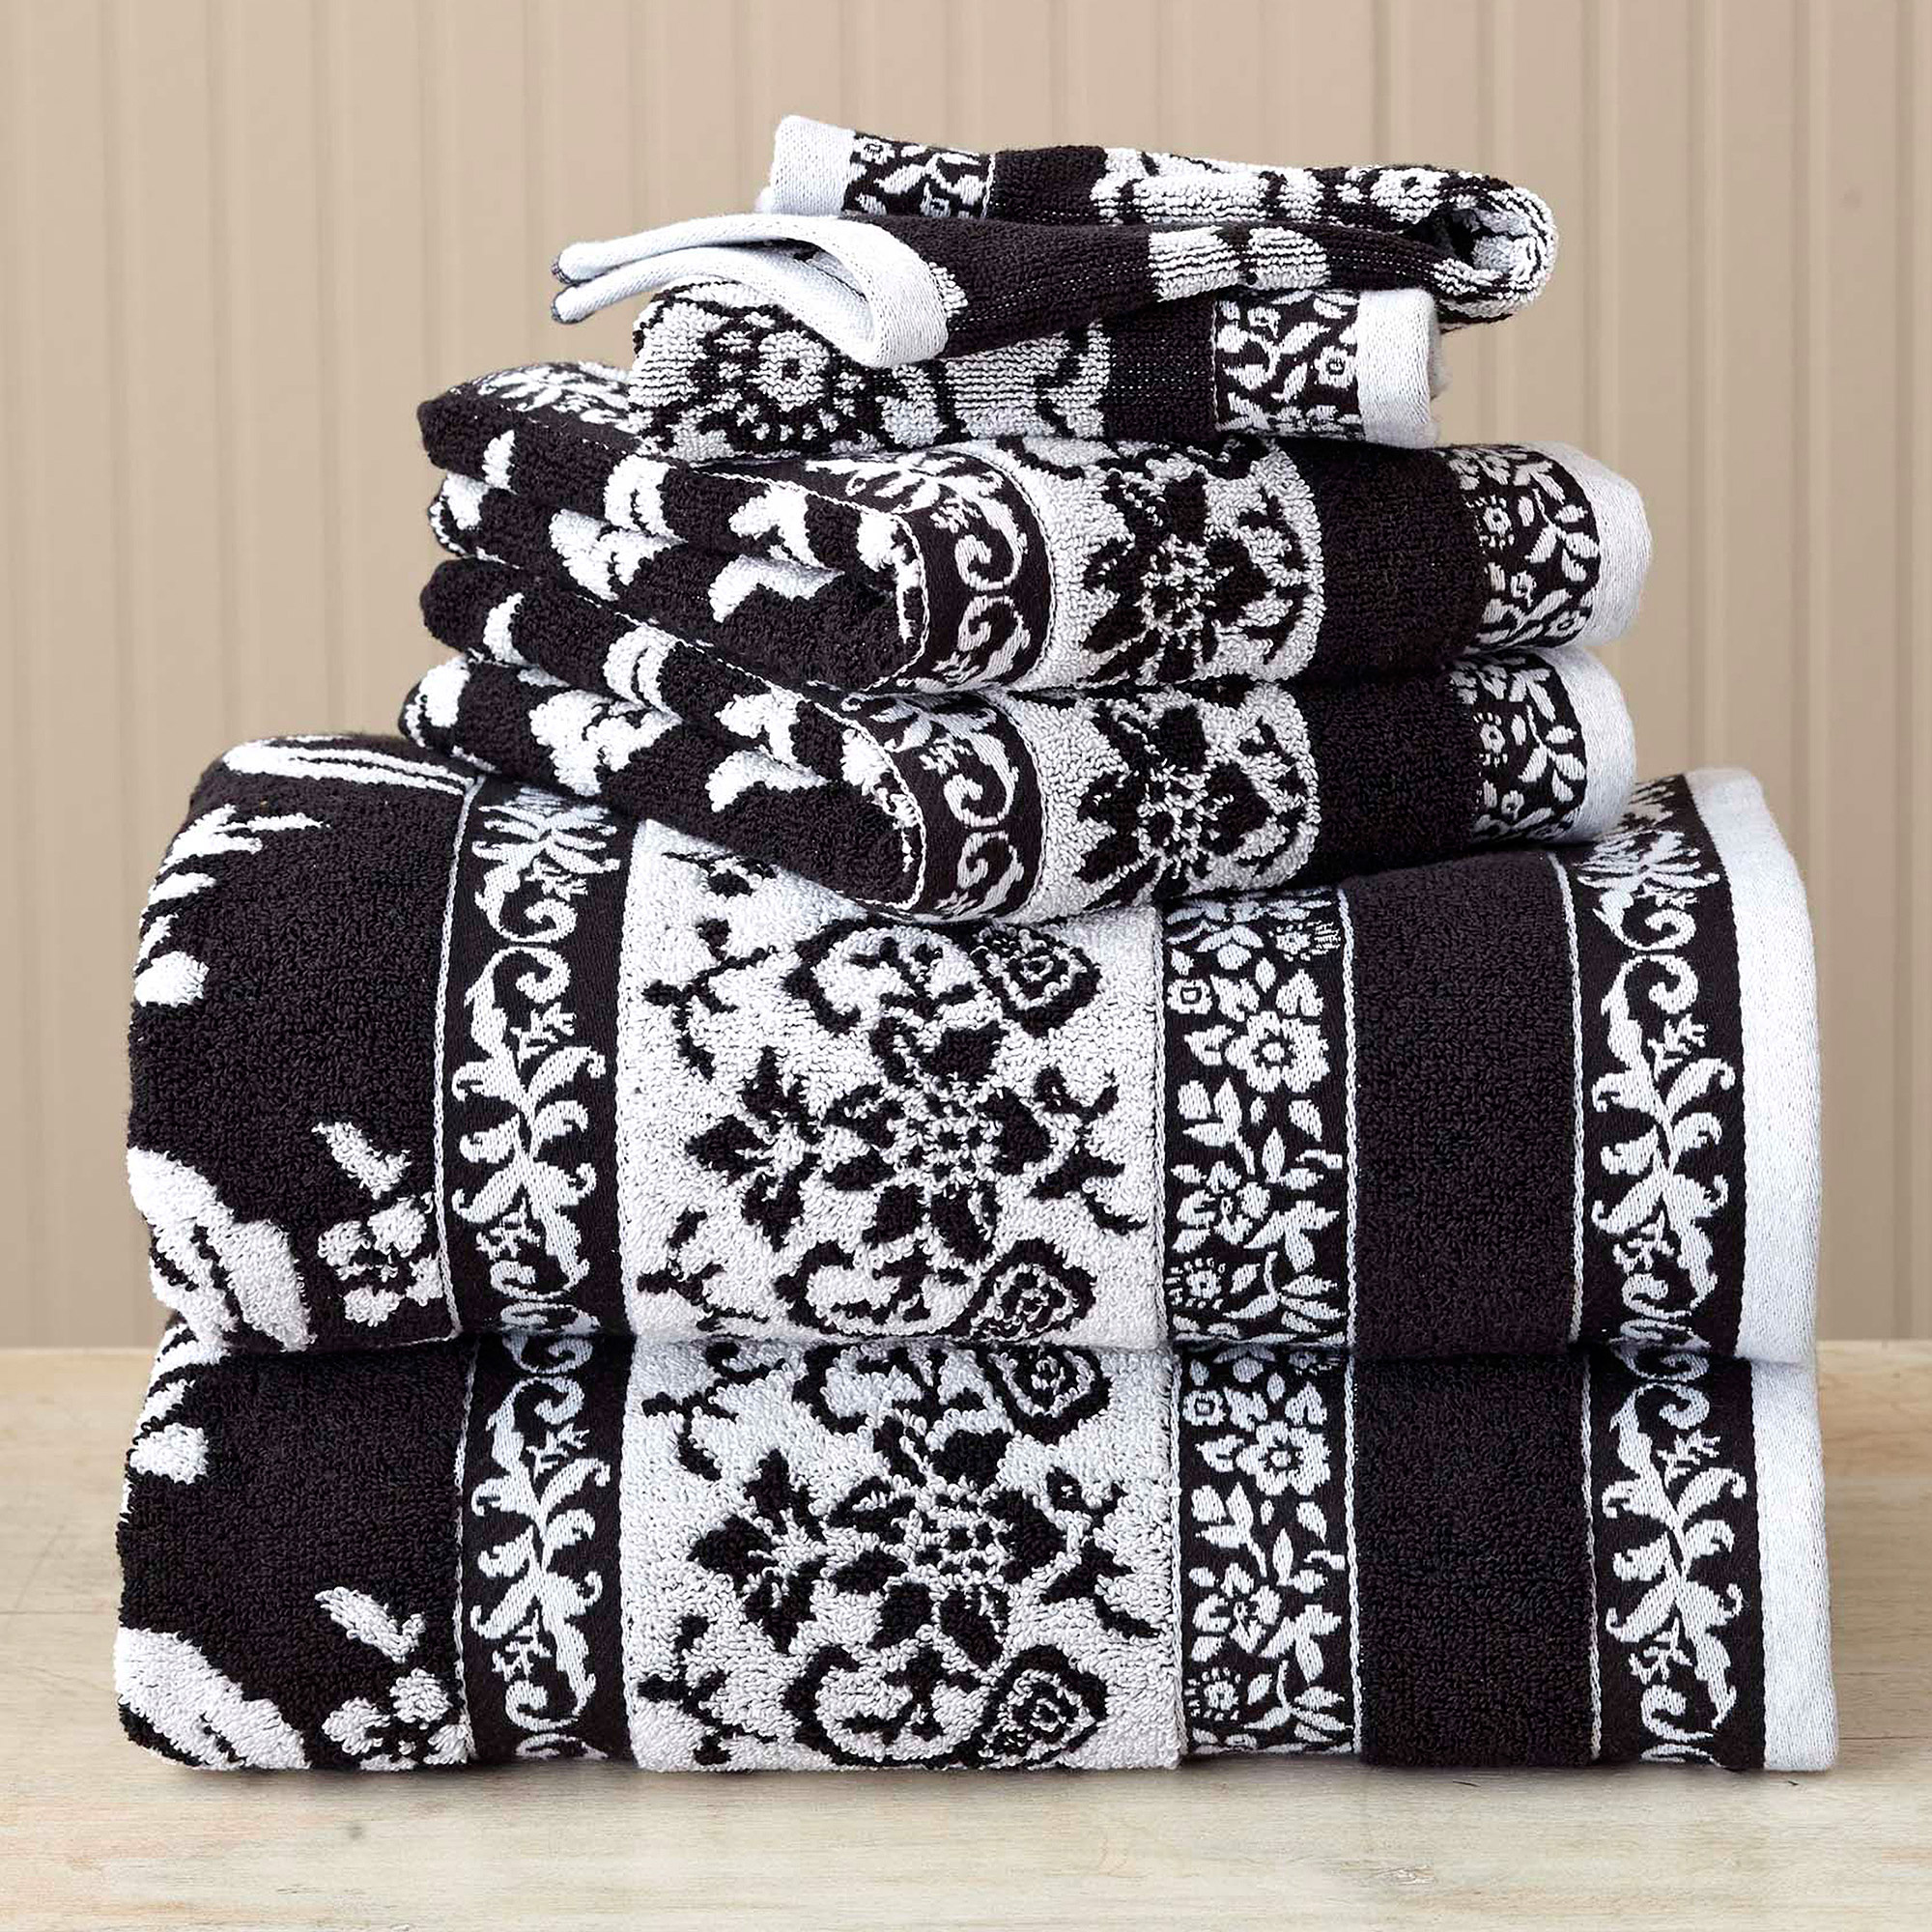 Better Homes and Gardens Thick and Plush 6-Piece Jacquard Cotton Bath Towel Set